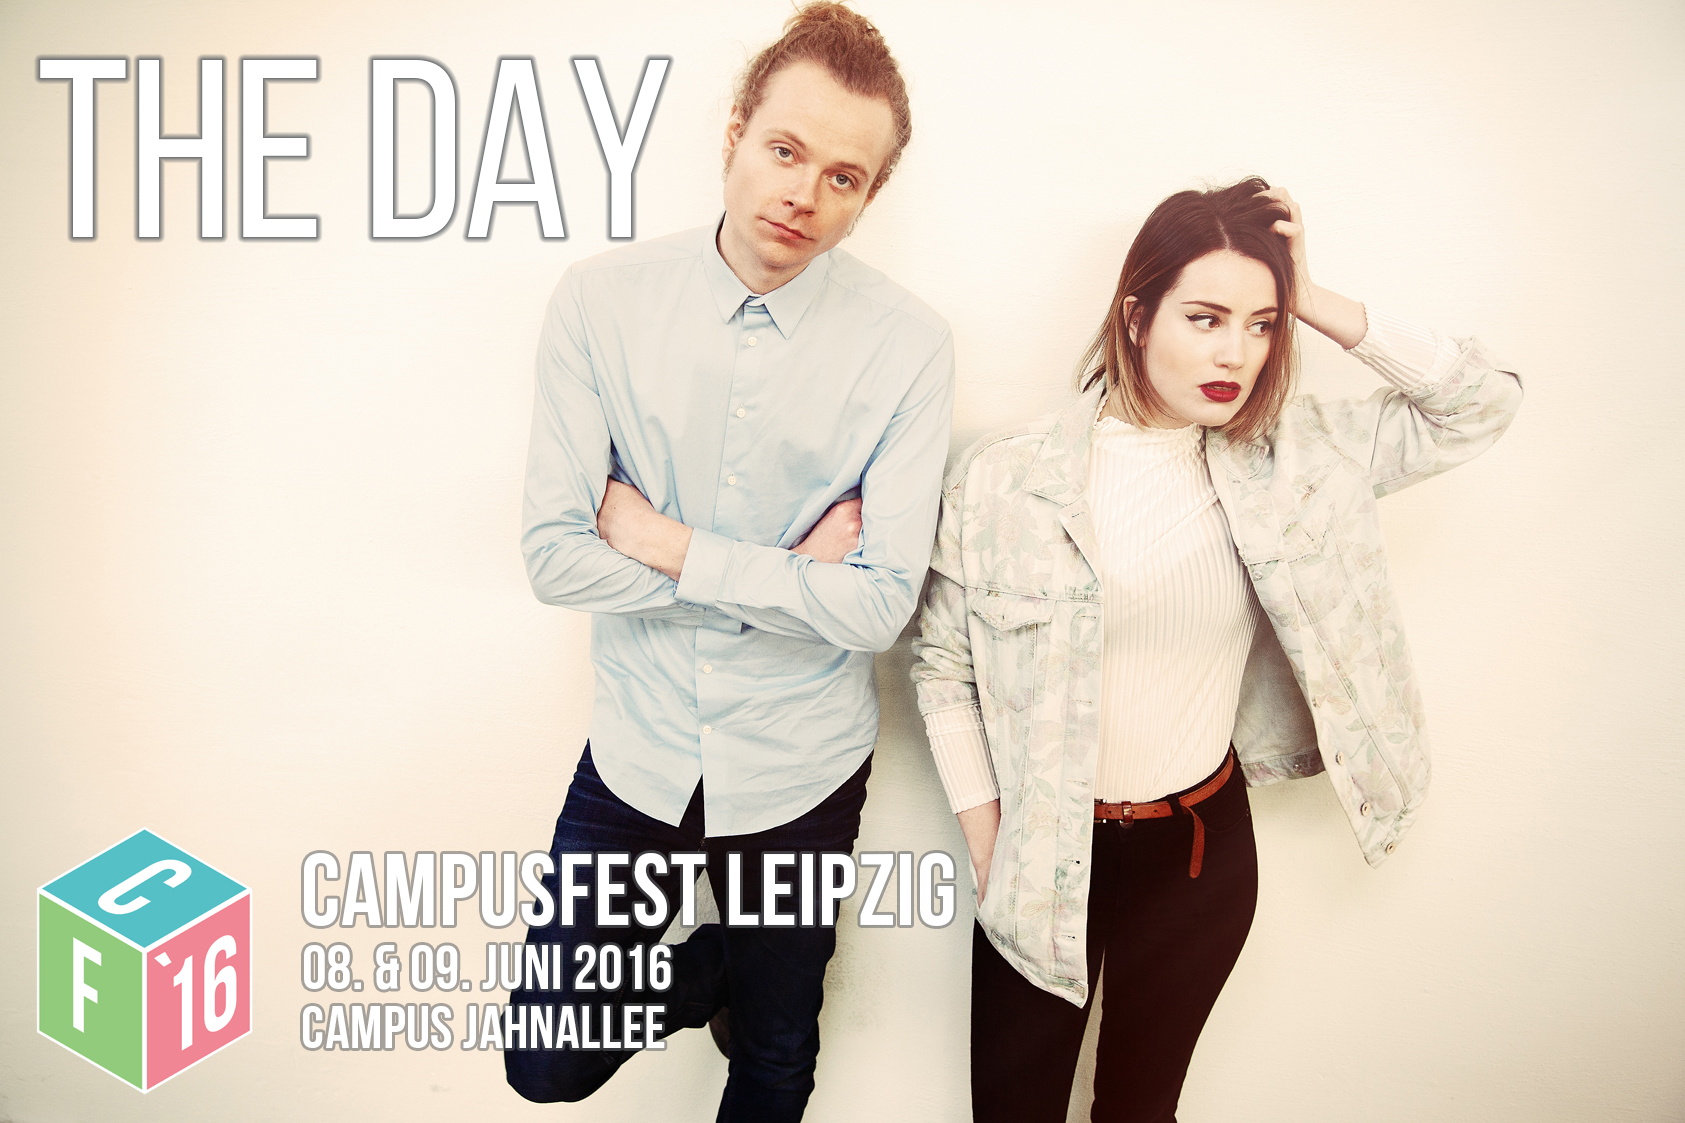 The Day Campusfest Leipzig 2016